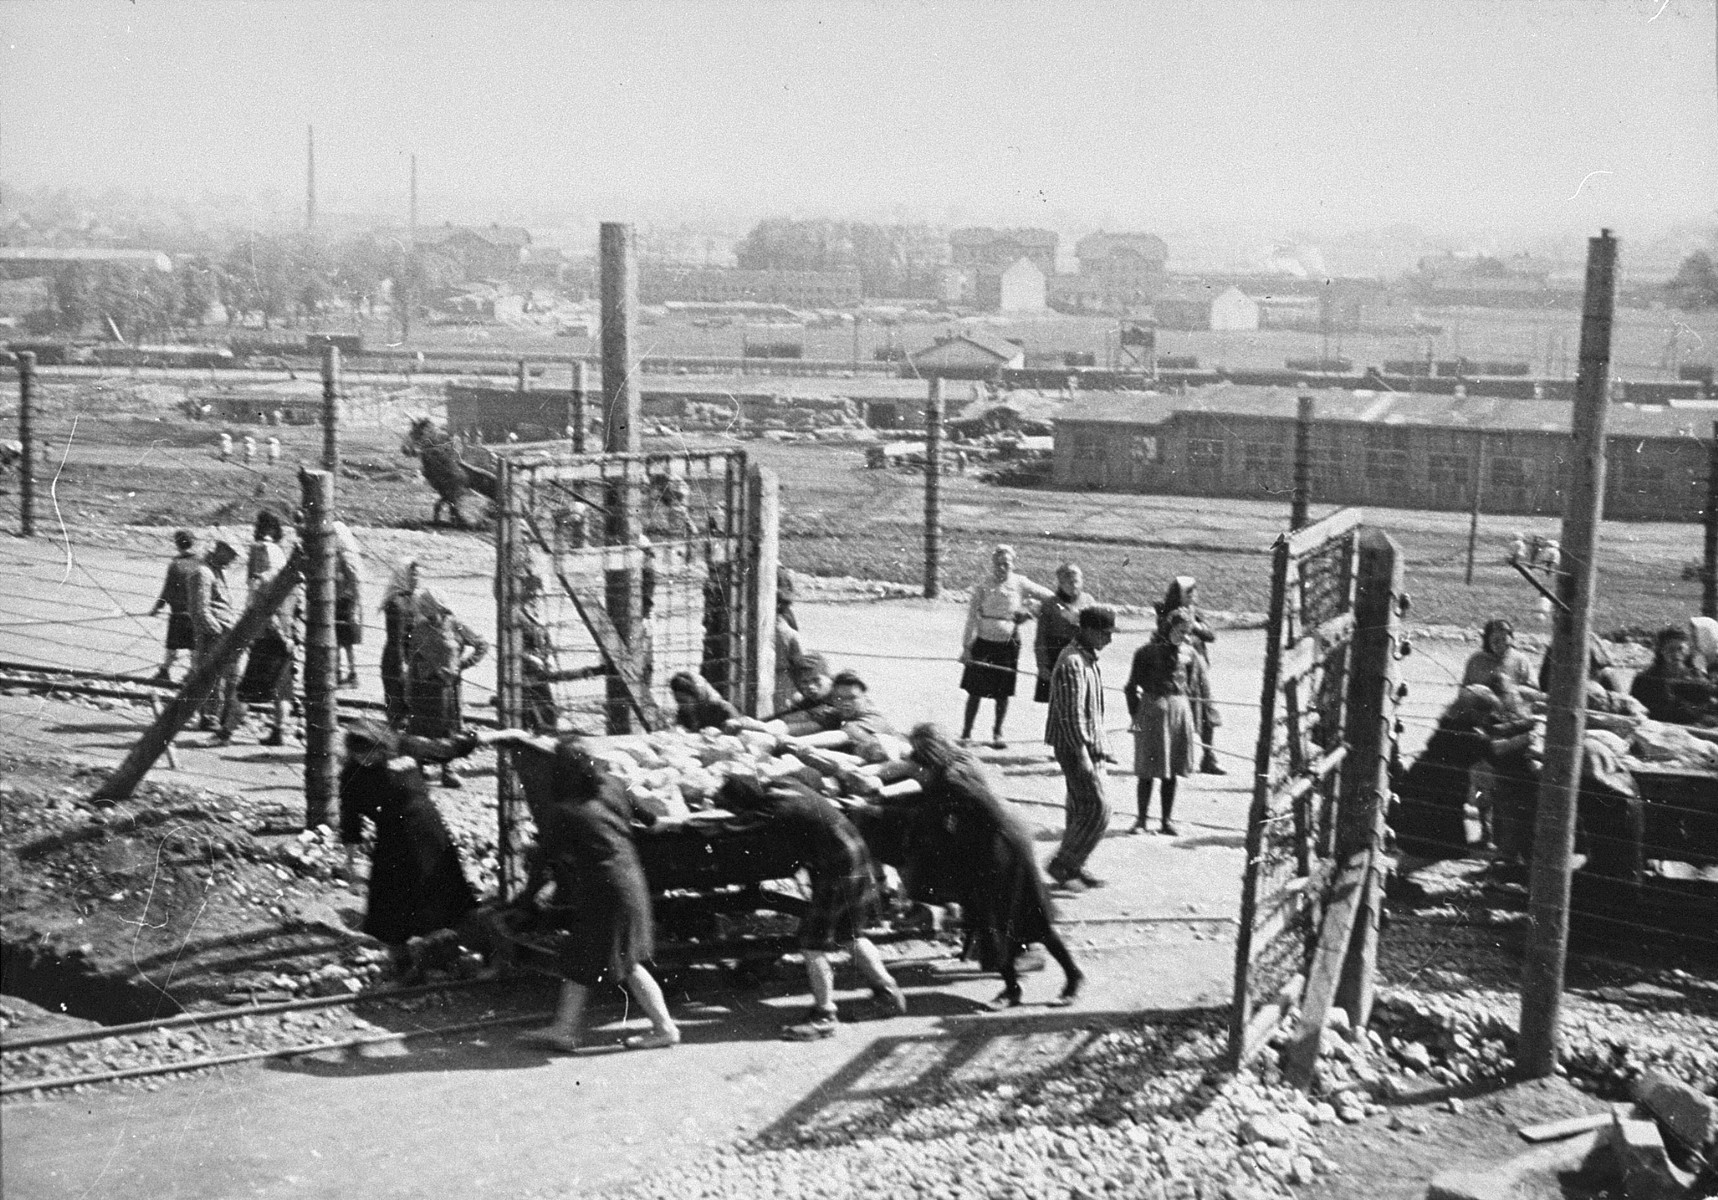 Jewish women at forced labor in Plaszow.